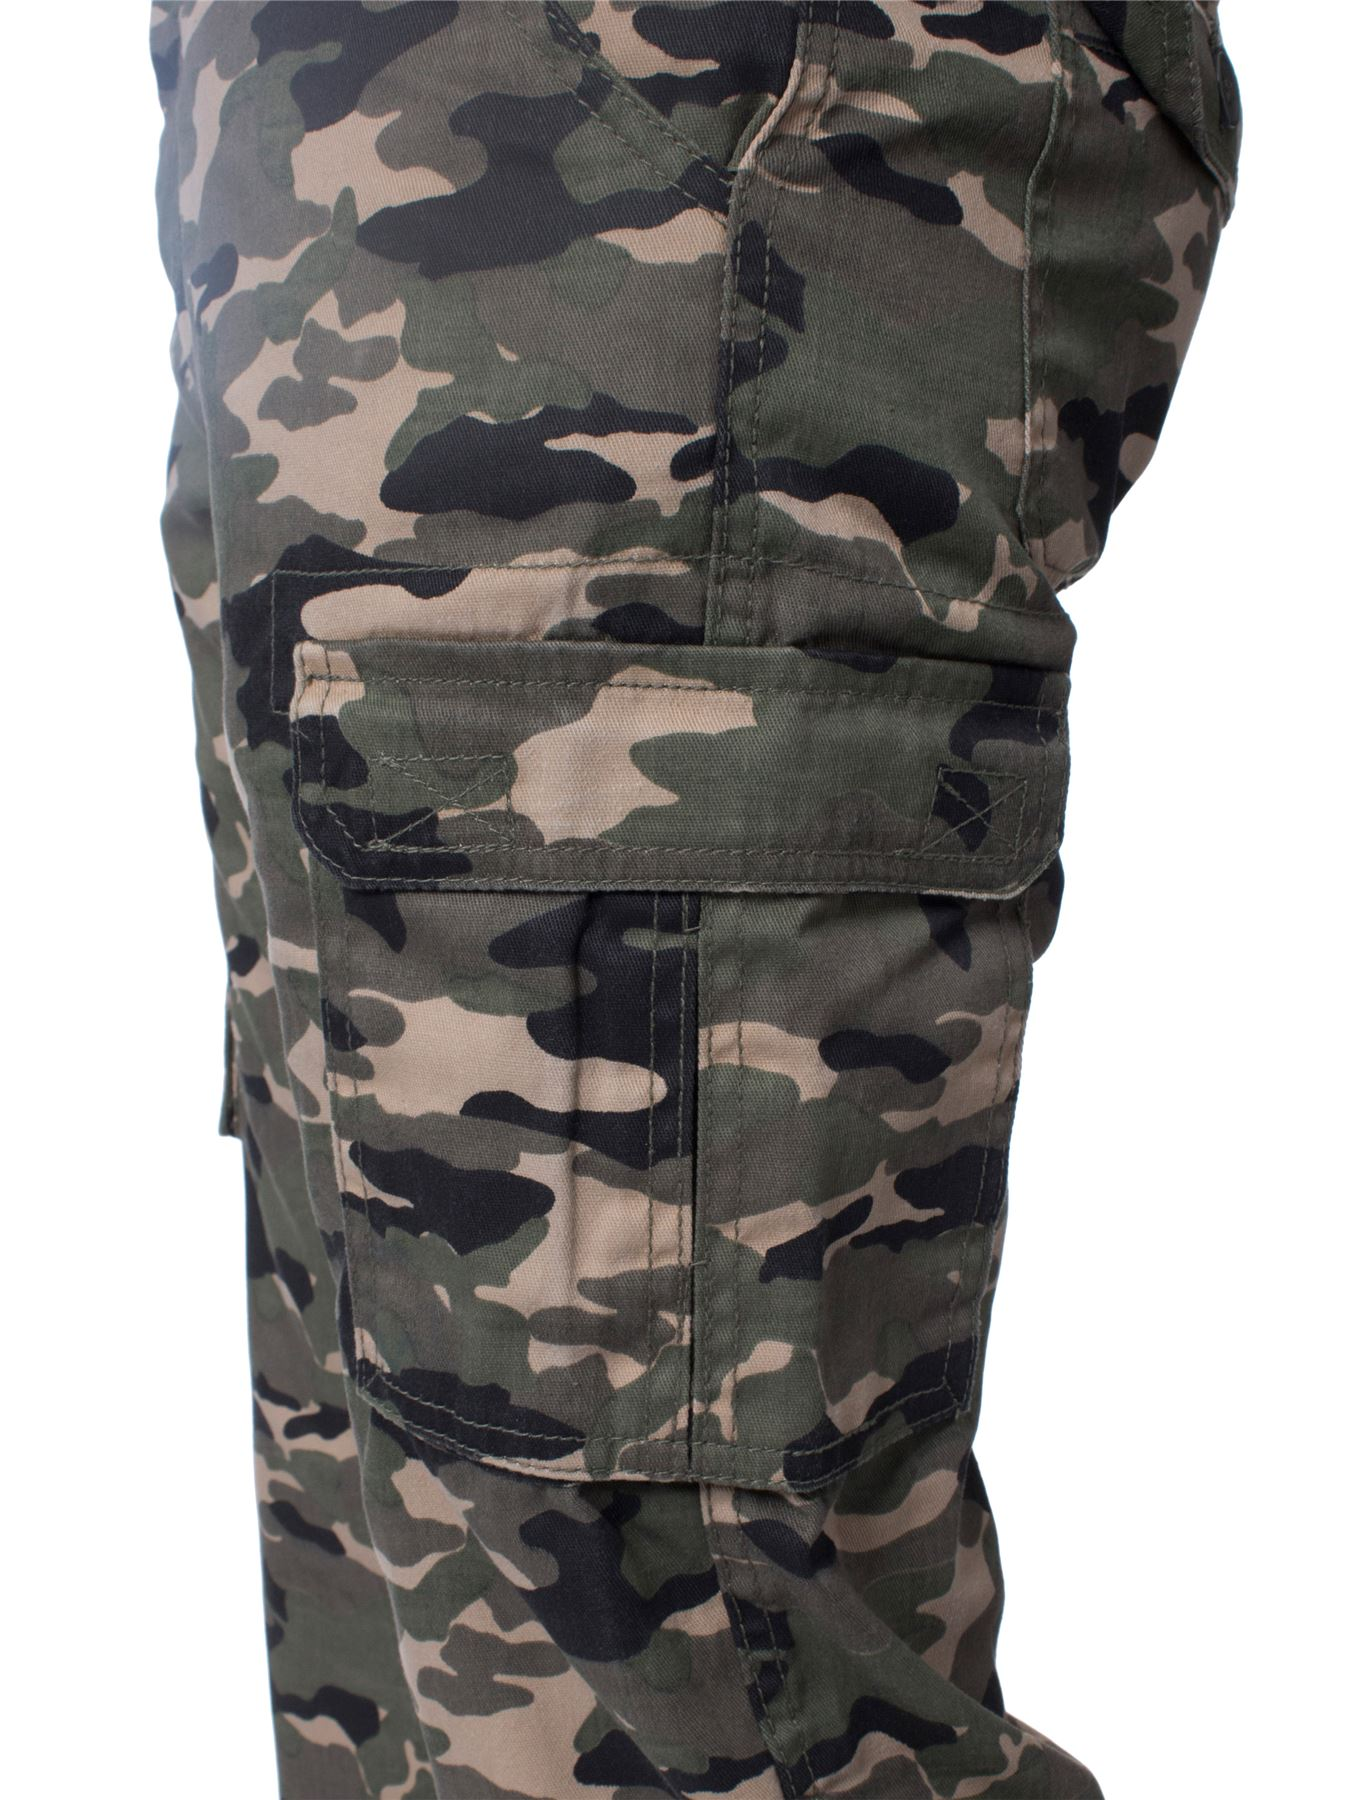 Kruze-Mens-Military-Combat-Trousers-Camouflage-Cargo-Camo-Army-Casual-Work-Pants thumbnail 20